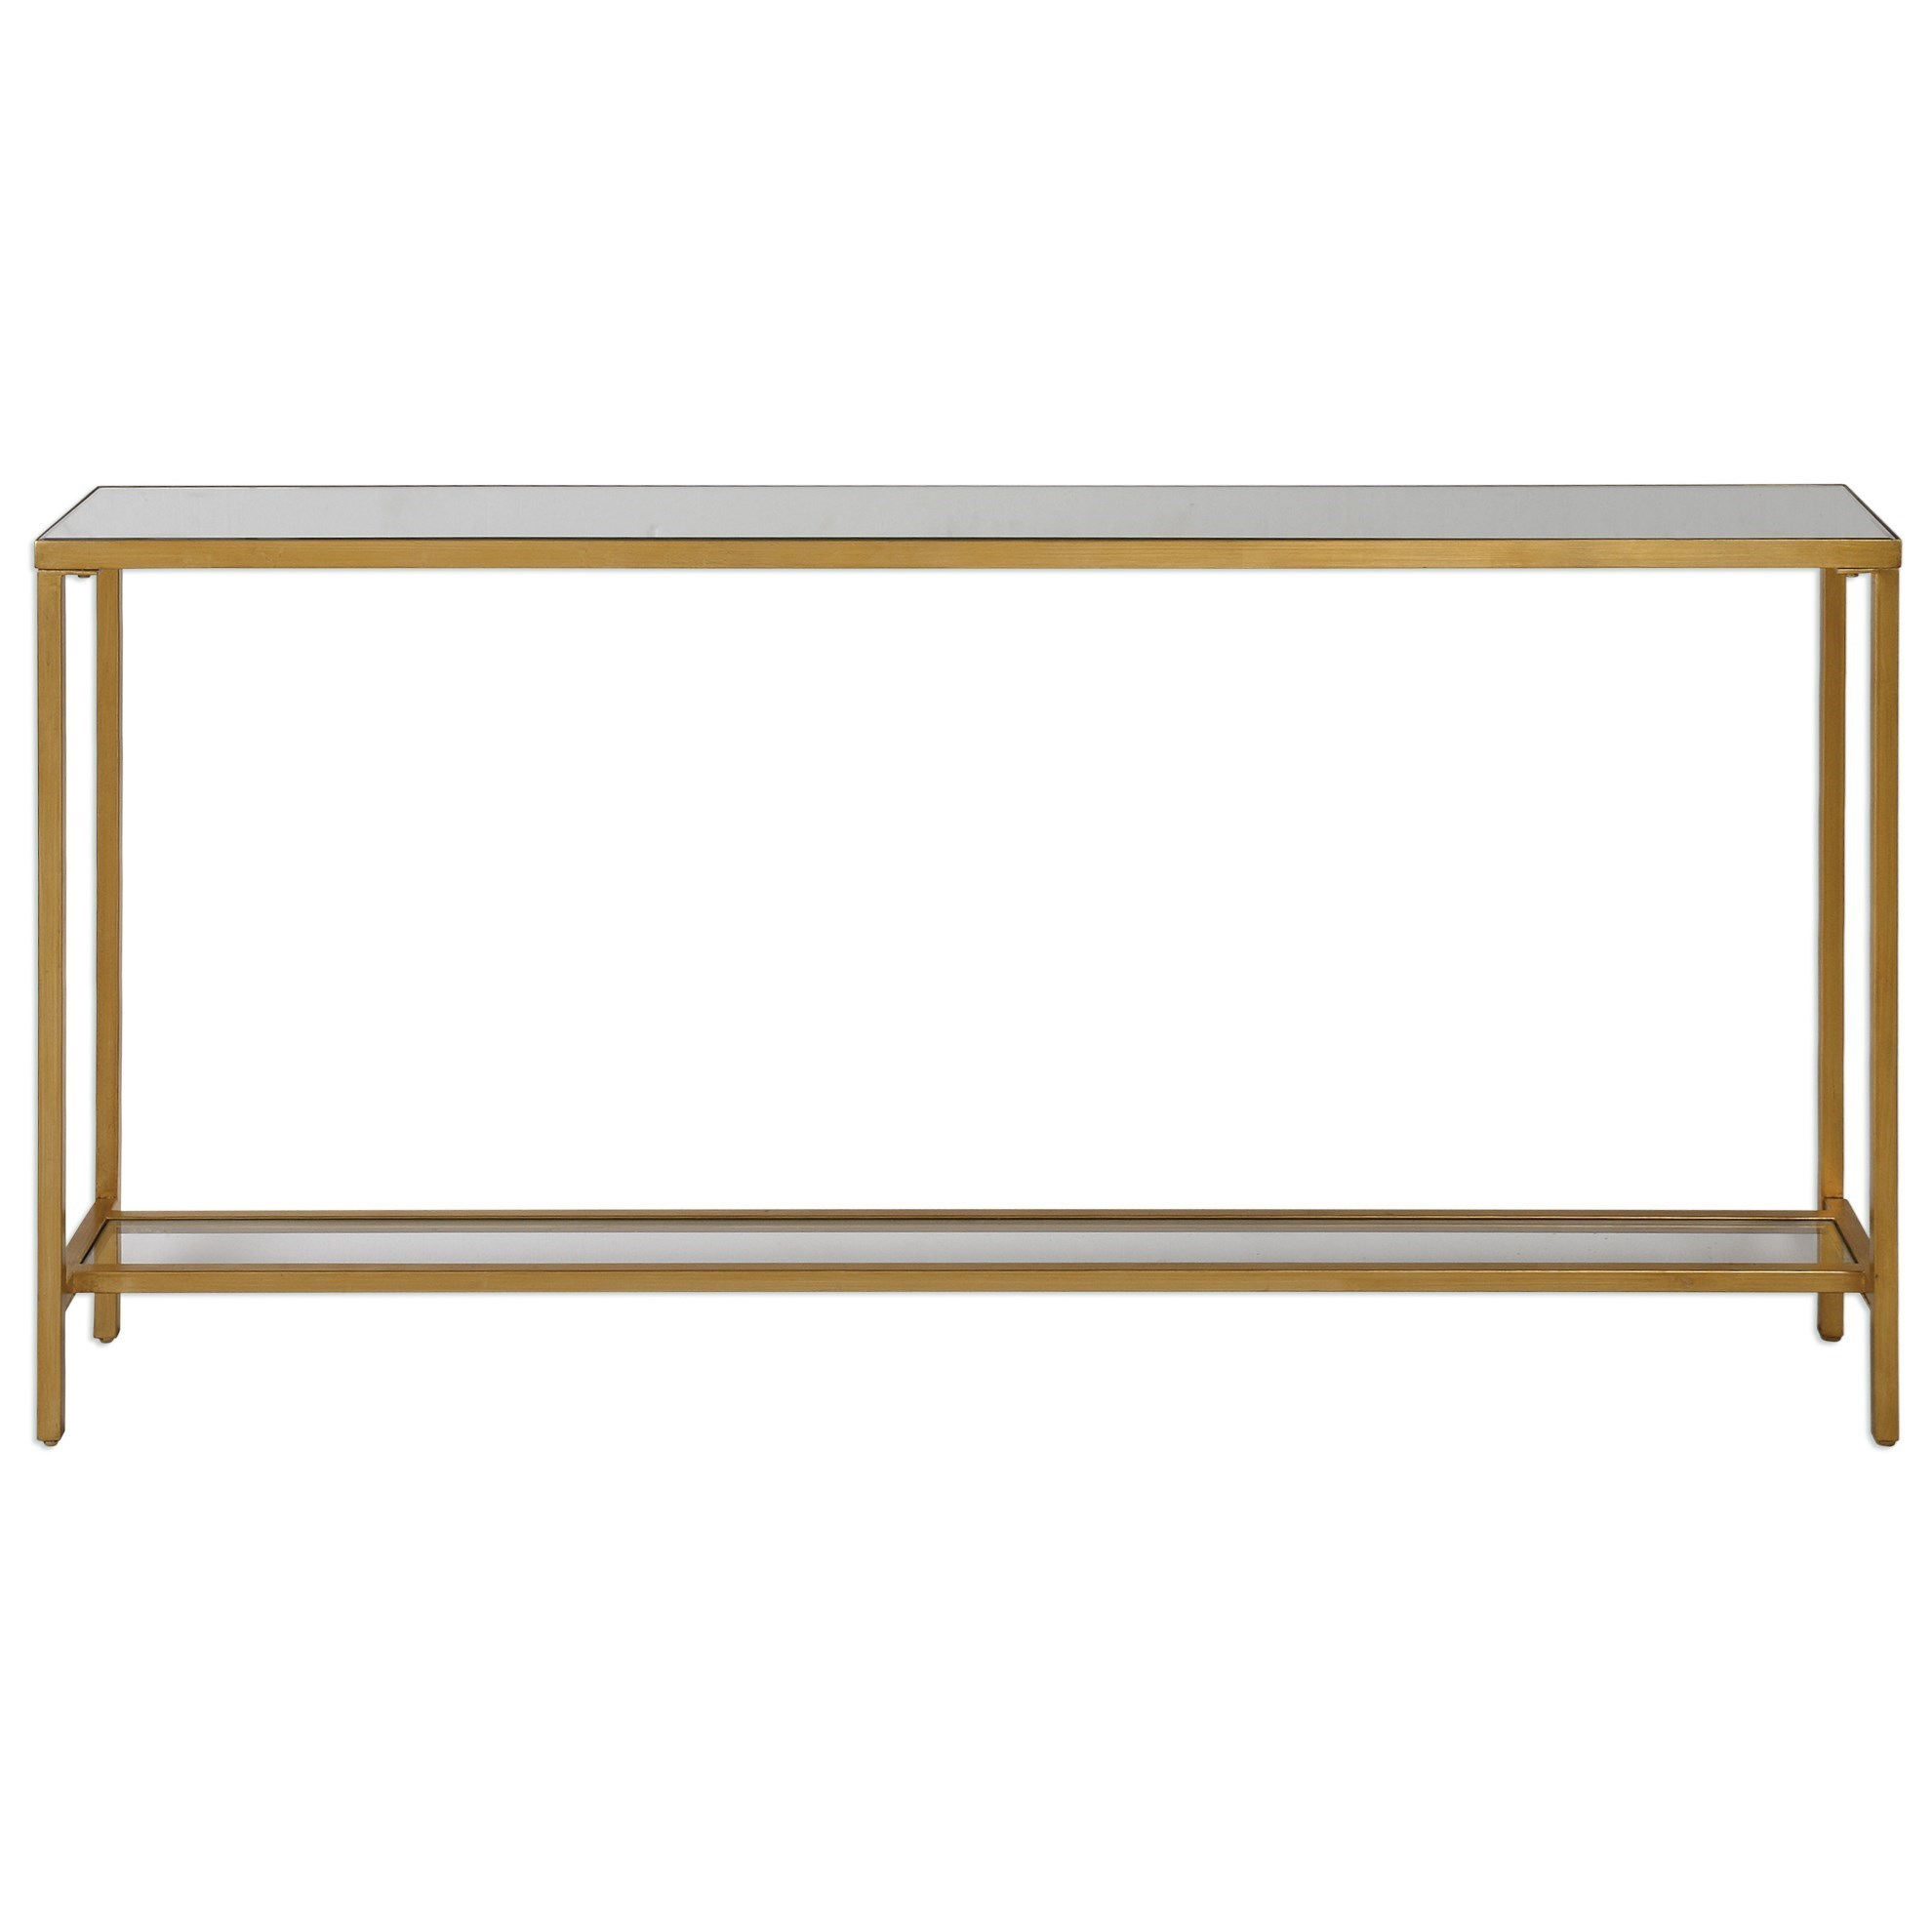 accent furniture hayley console table becker world products uttermost color stratford wicker folding bronze item number butterfly lamp storage cupboards with doors metal and glass